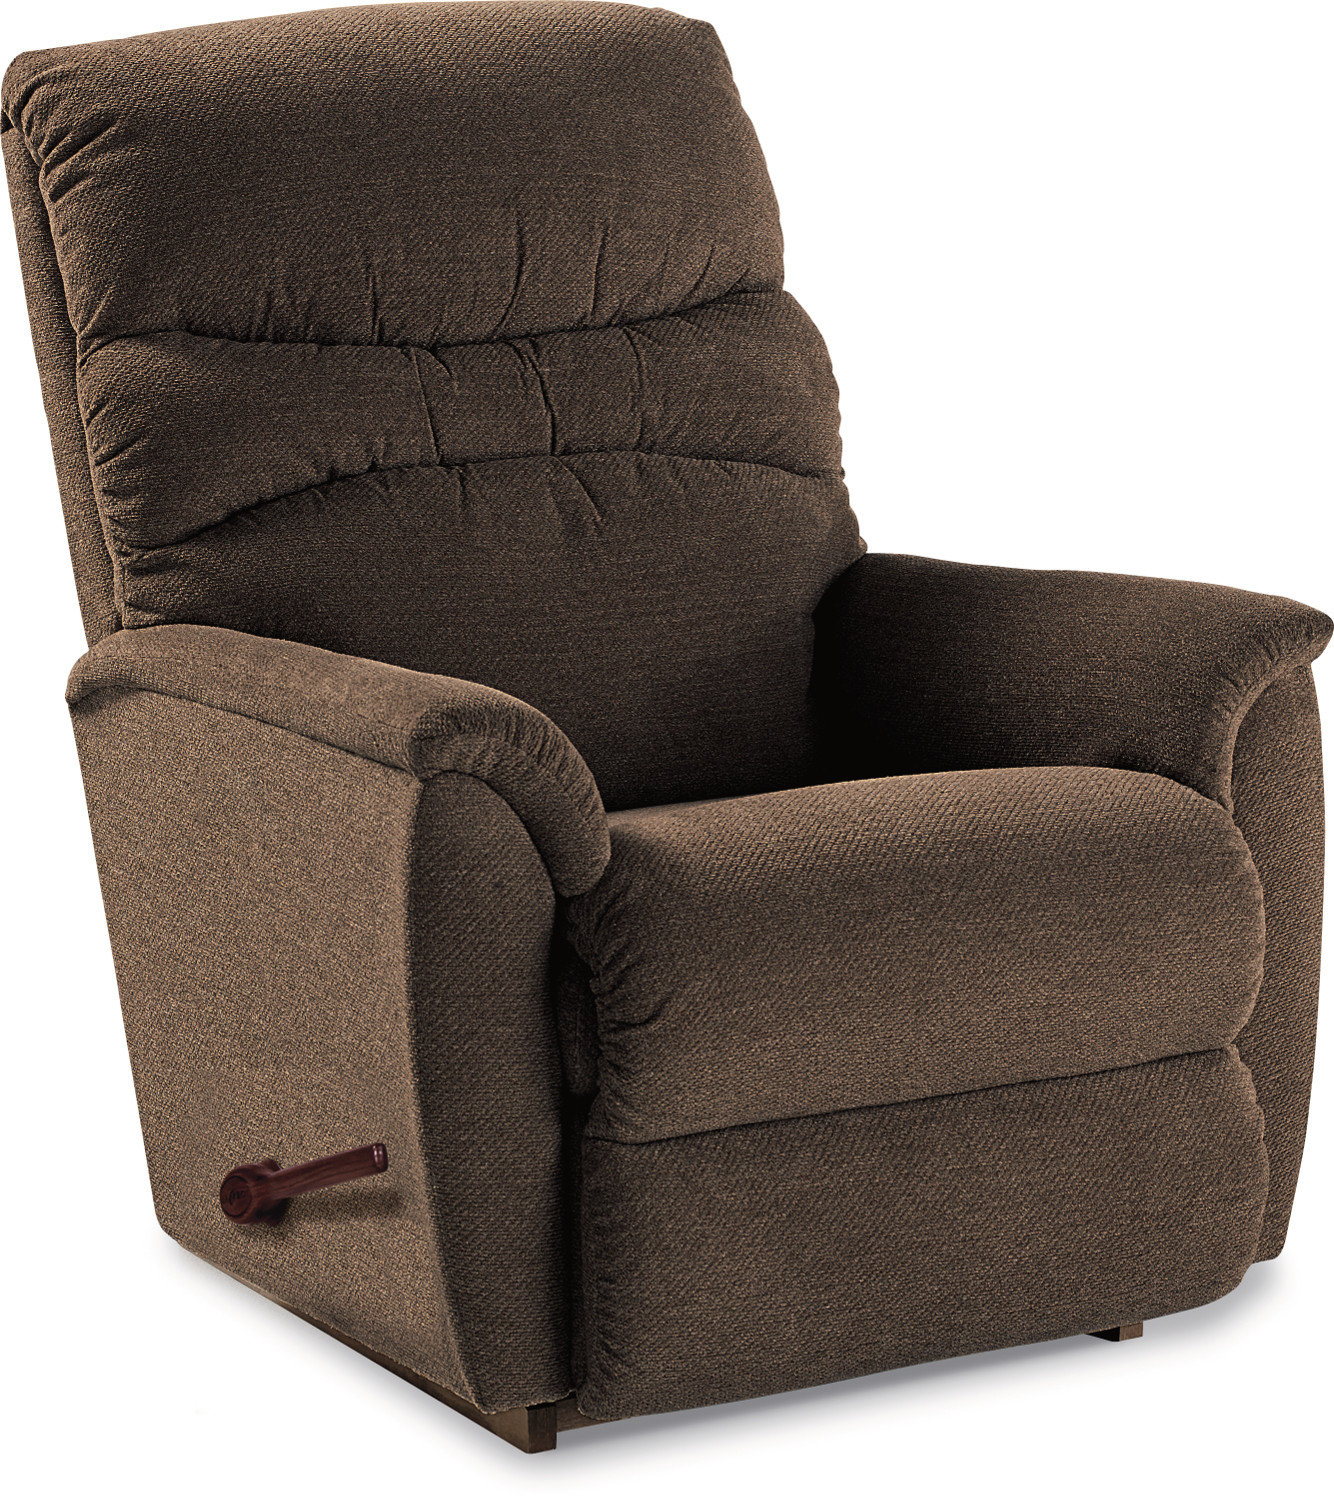 La Z Boy Coleman Rocker Recliner & Reviews | Wayfair For Sheldon Oversized Sofa Chairs (View 10 of 25)